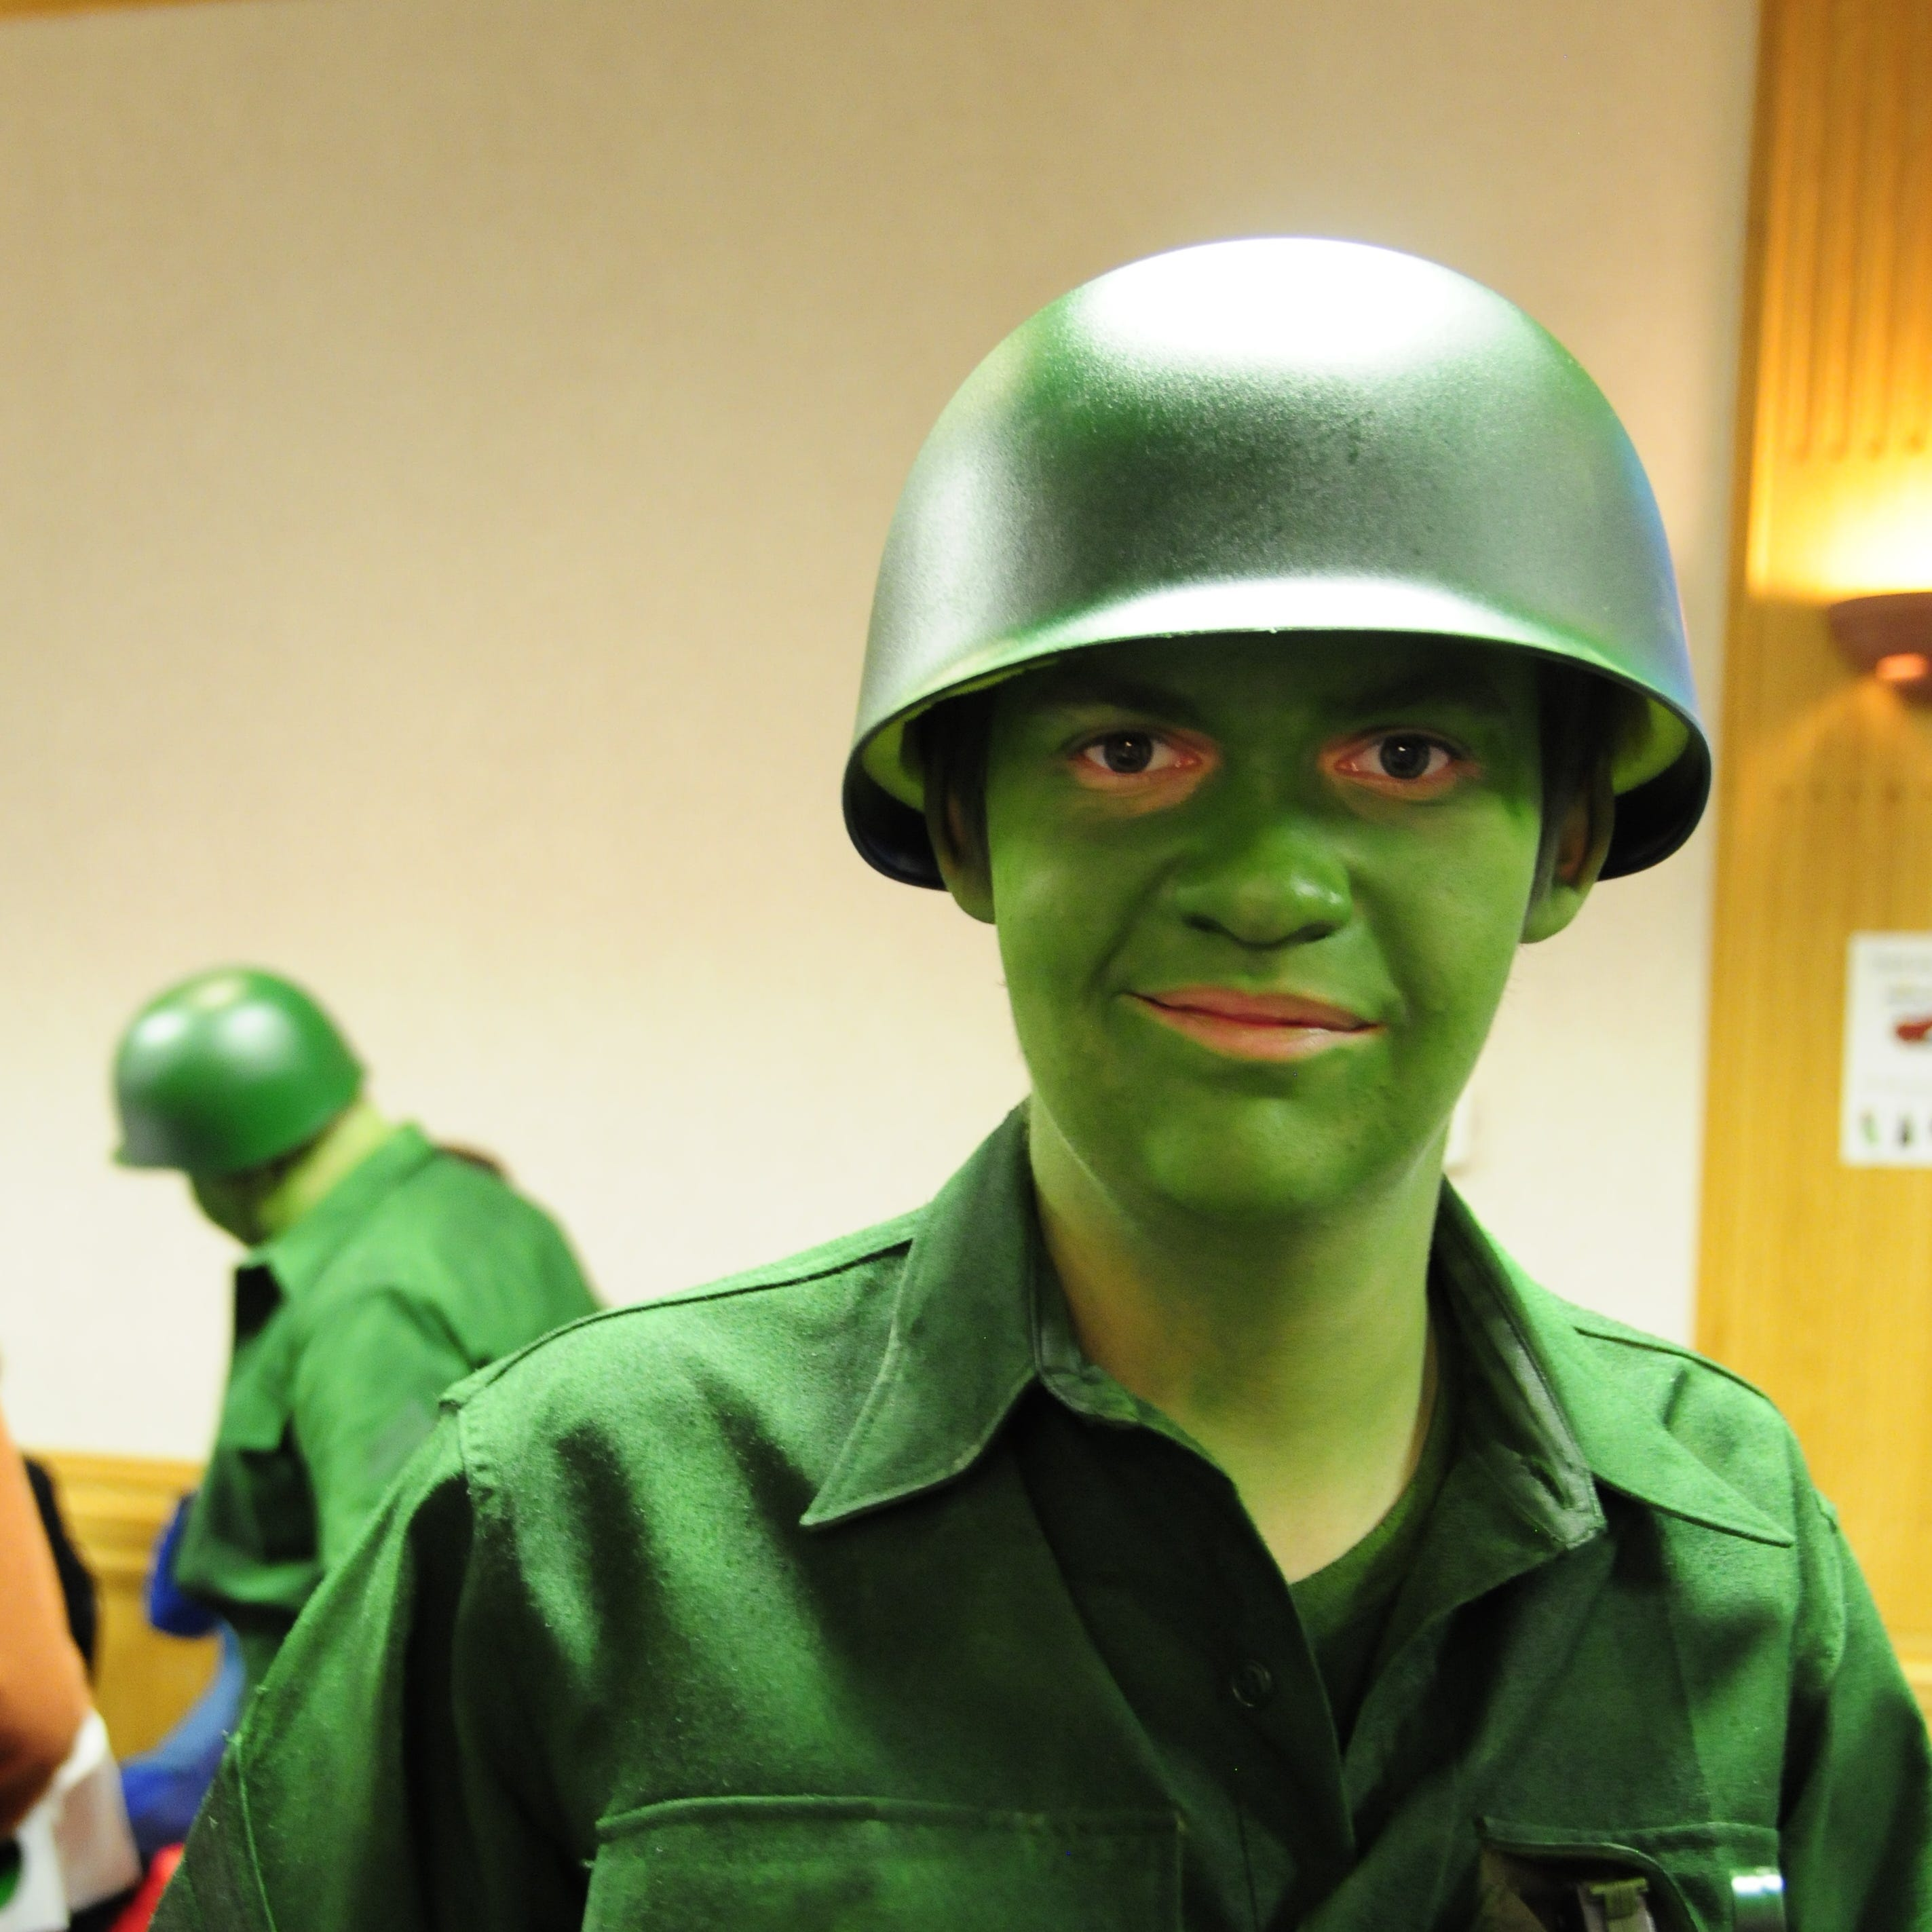 Comic Con brings out Marine City's characters